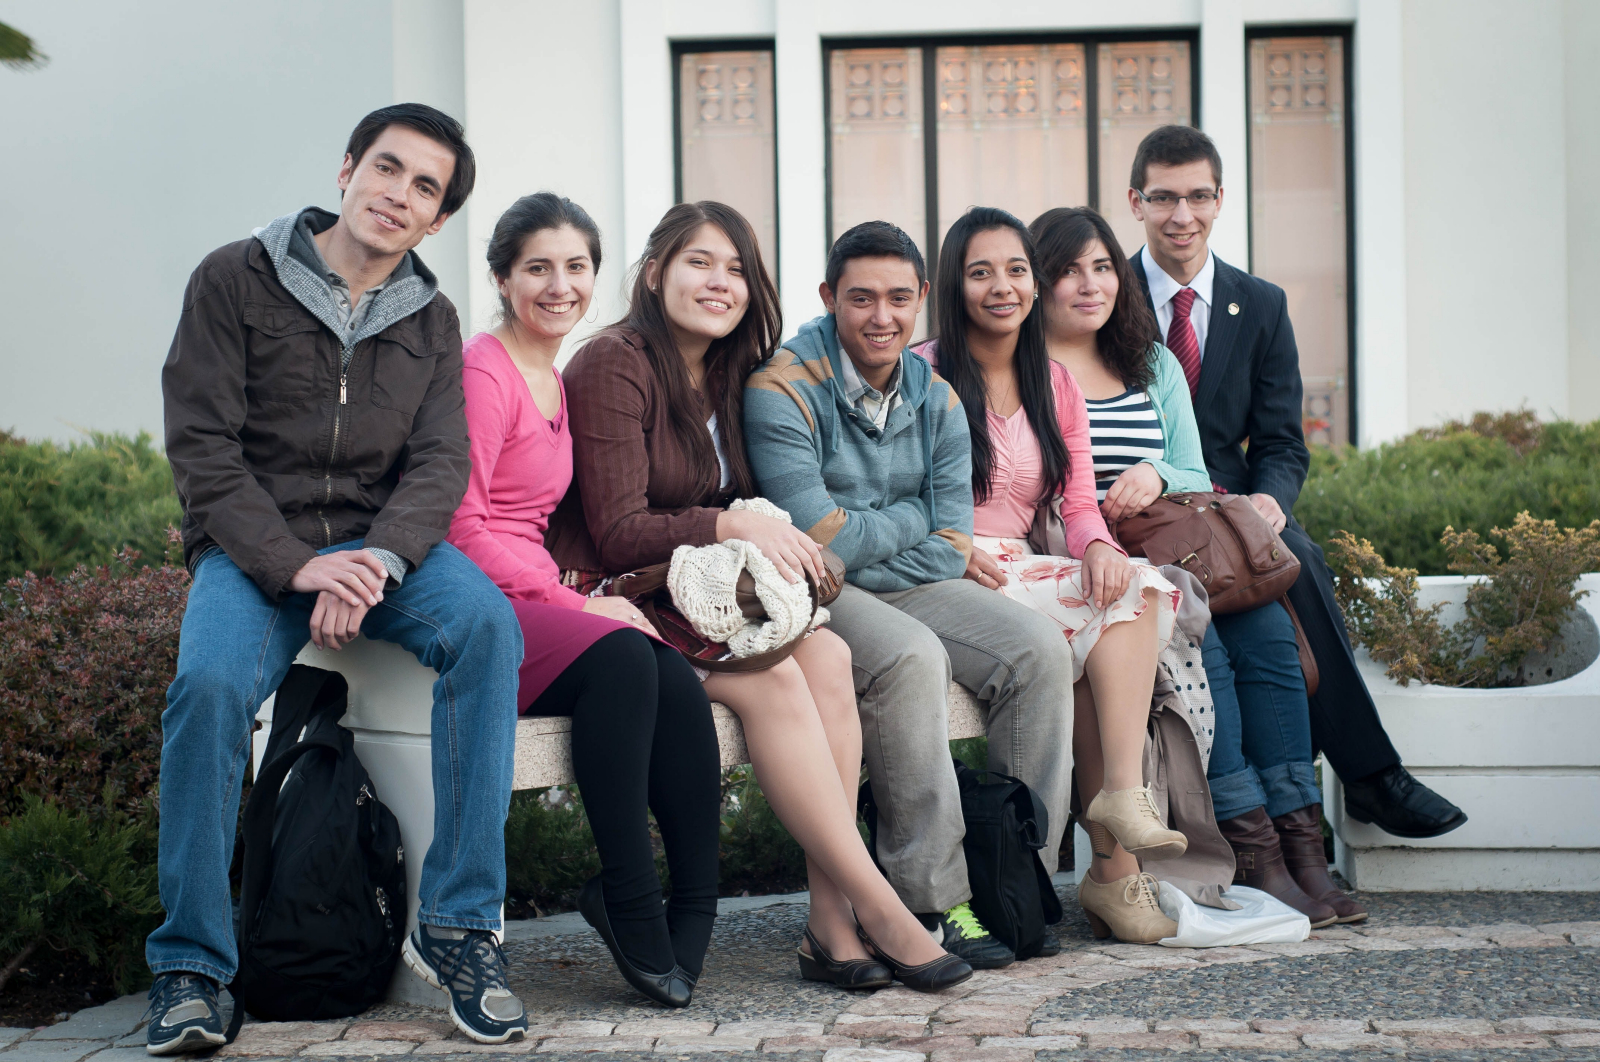 Youth from Chile participate in an Especially for Youth session.